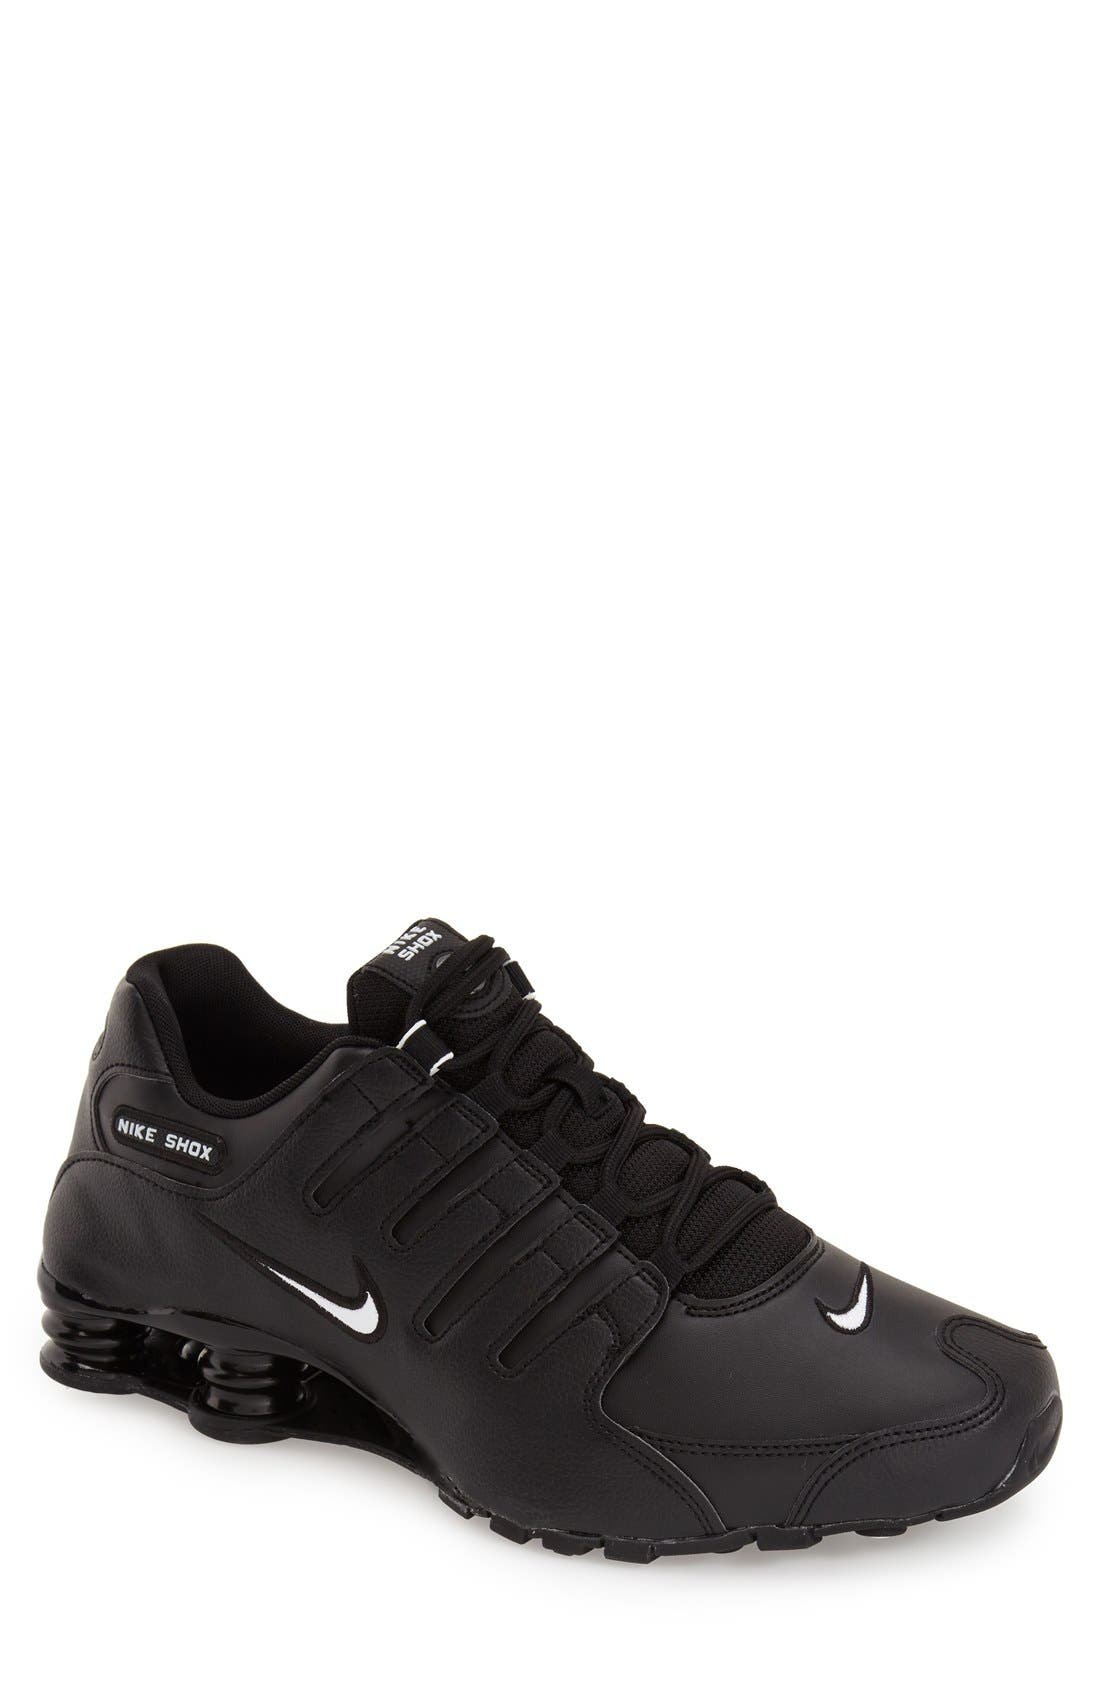 nike pegasus mens wide nz